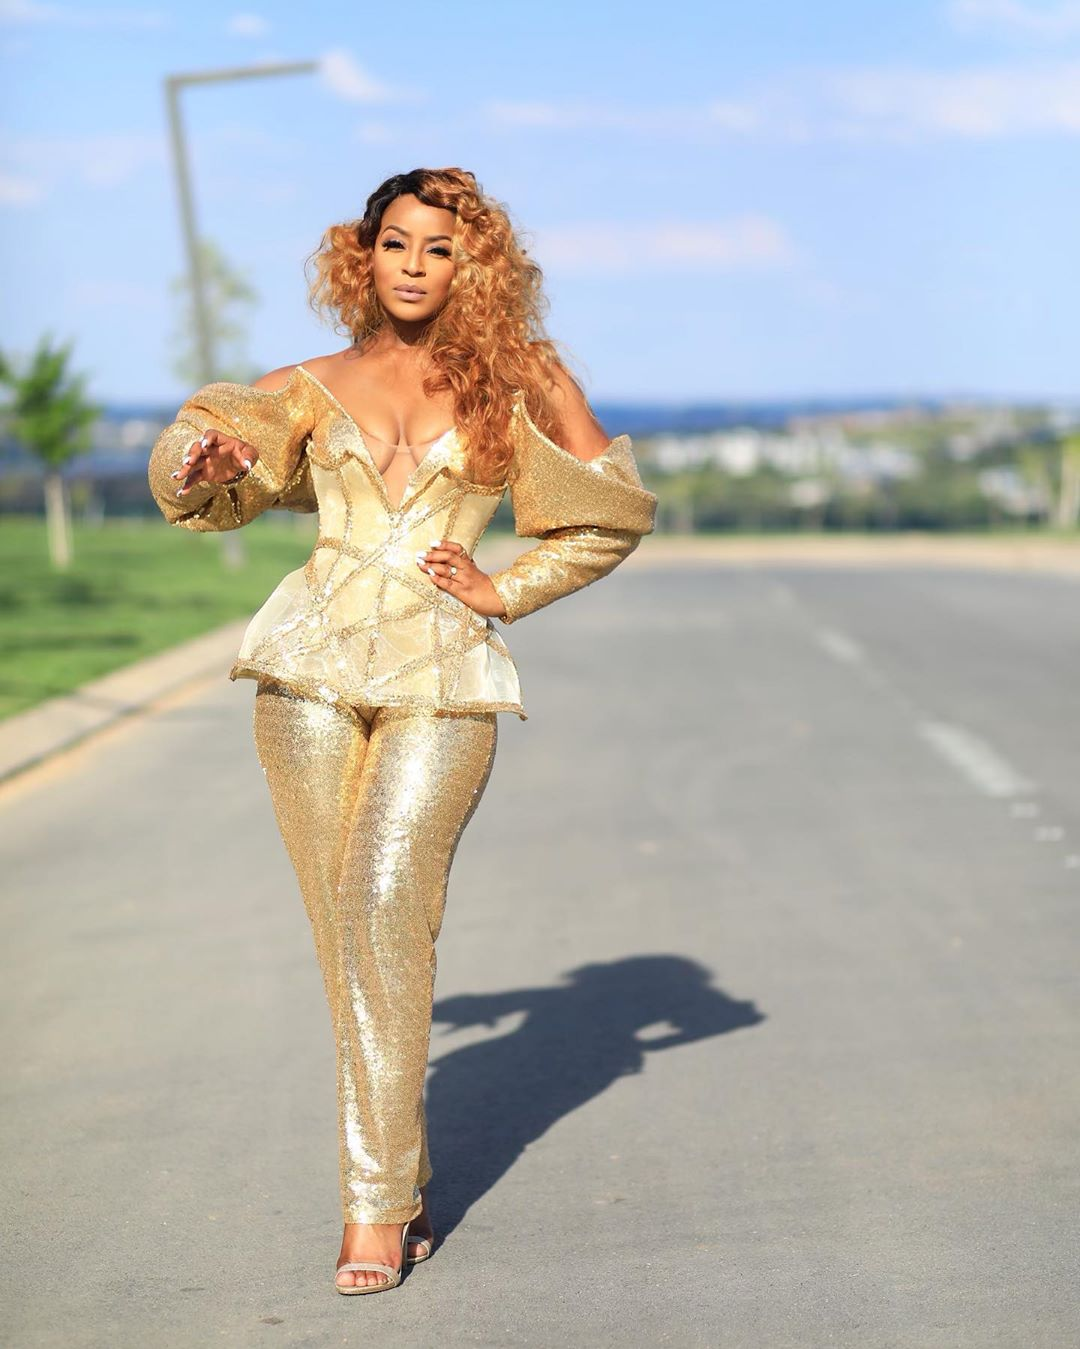 jessica-nkosi-south-african-media-personality-gold-outfit